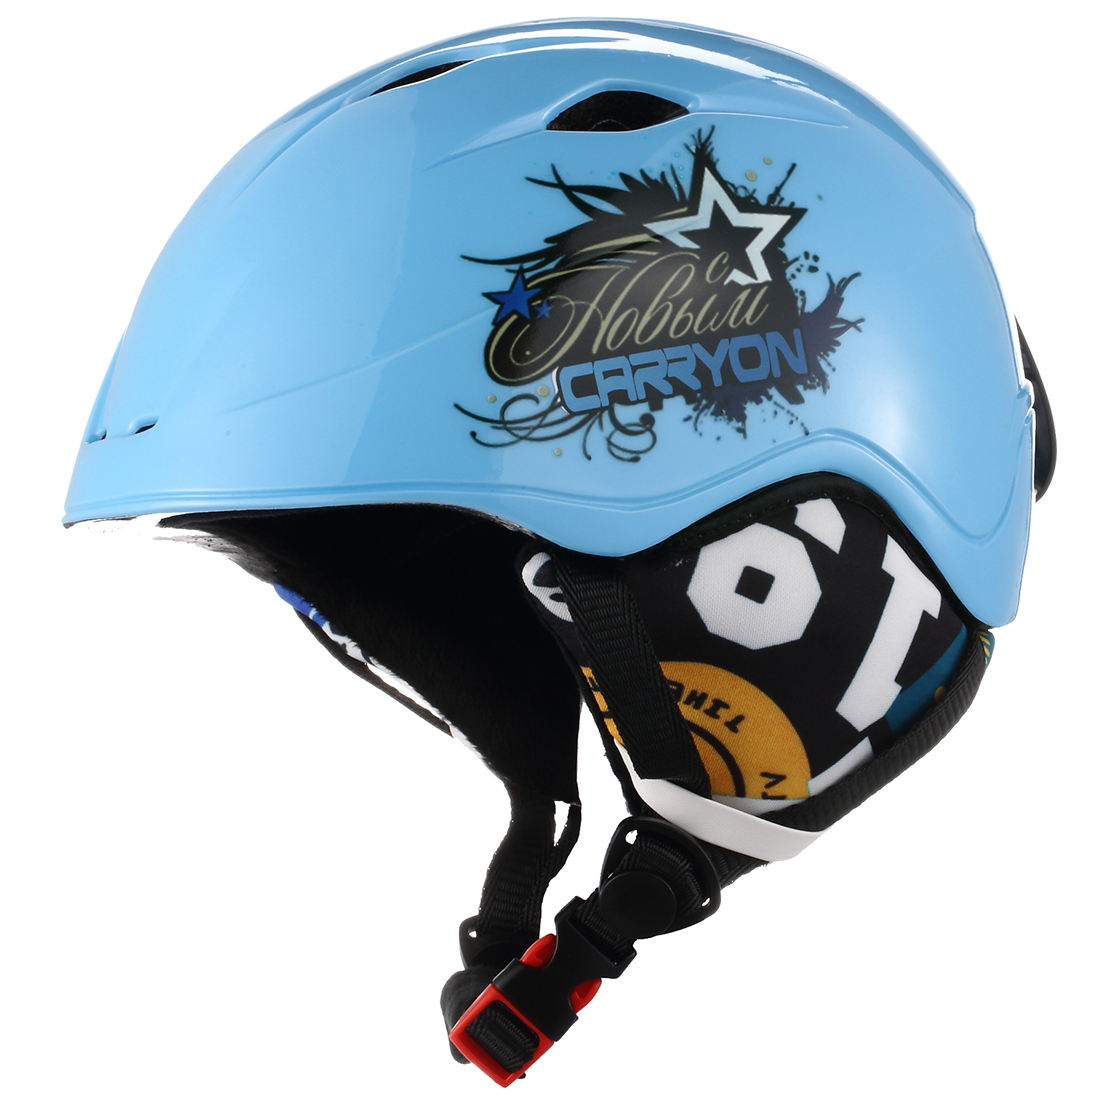 Sporting Plastic Carryon Authorized Kids Warm Snowboard Ski Helmet Snow Head Protective Blue